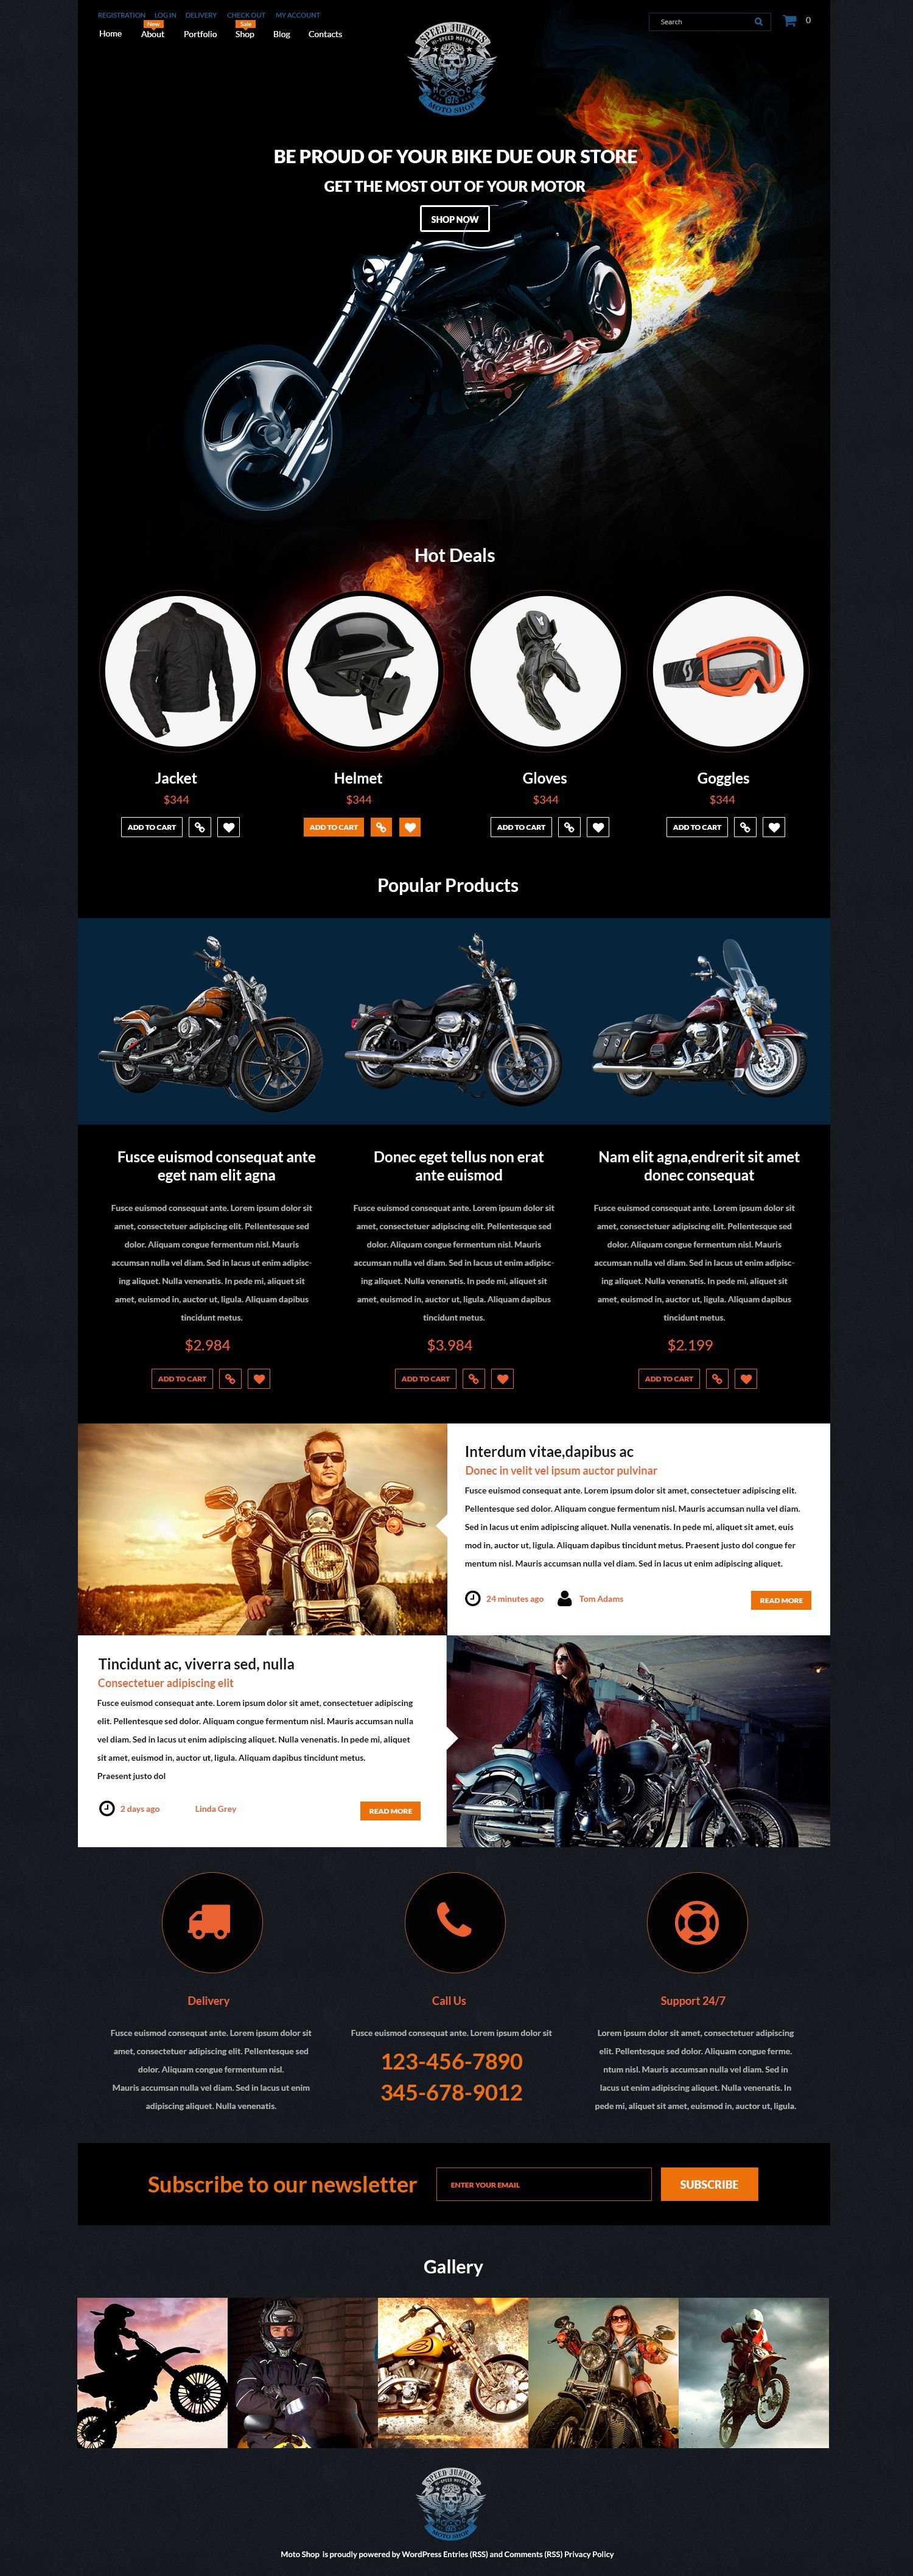 The Speed Junkies WooCommerce Design 53811, one of the best WooCommerce themes of its kind (cars, most popular), also known as speed junkies WooCommerce template, bikes WooCommerce template, moto WooCommerce template, motor store WooCommerce template, helmets WooCommerce template, gear WooCommerce template, scooter WooCommerce template, snowmobile WooCommerce template, parts WooCommerce template, accessories WooCommerce template, tires WooCommerce template, closeouts and related with speed junkies, bikes, moto, motor store, helmets, gear, scooter, snowmobile, parts, accessories, tires, closeouts, etc.